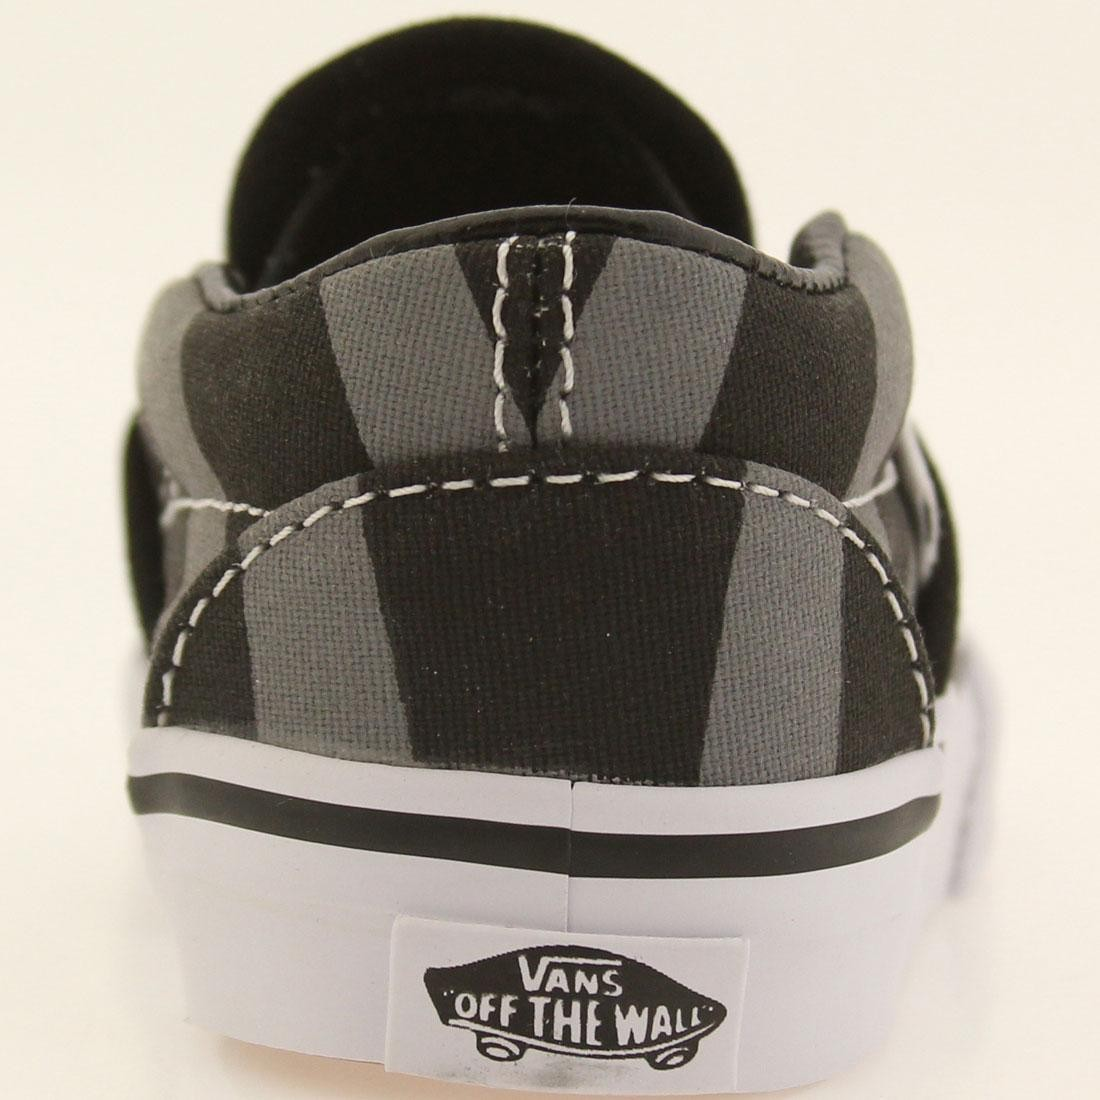 2f0ebe0abcf445 Vans x Disney Toddlers Classic Slip-On - Alice In Wonderland Cheshire Cat ( black)